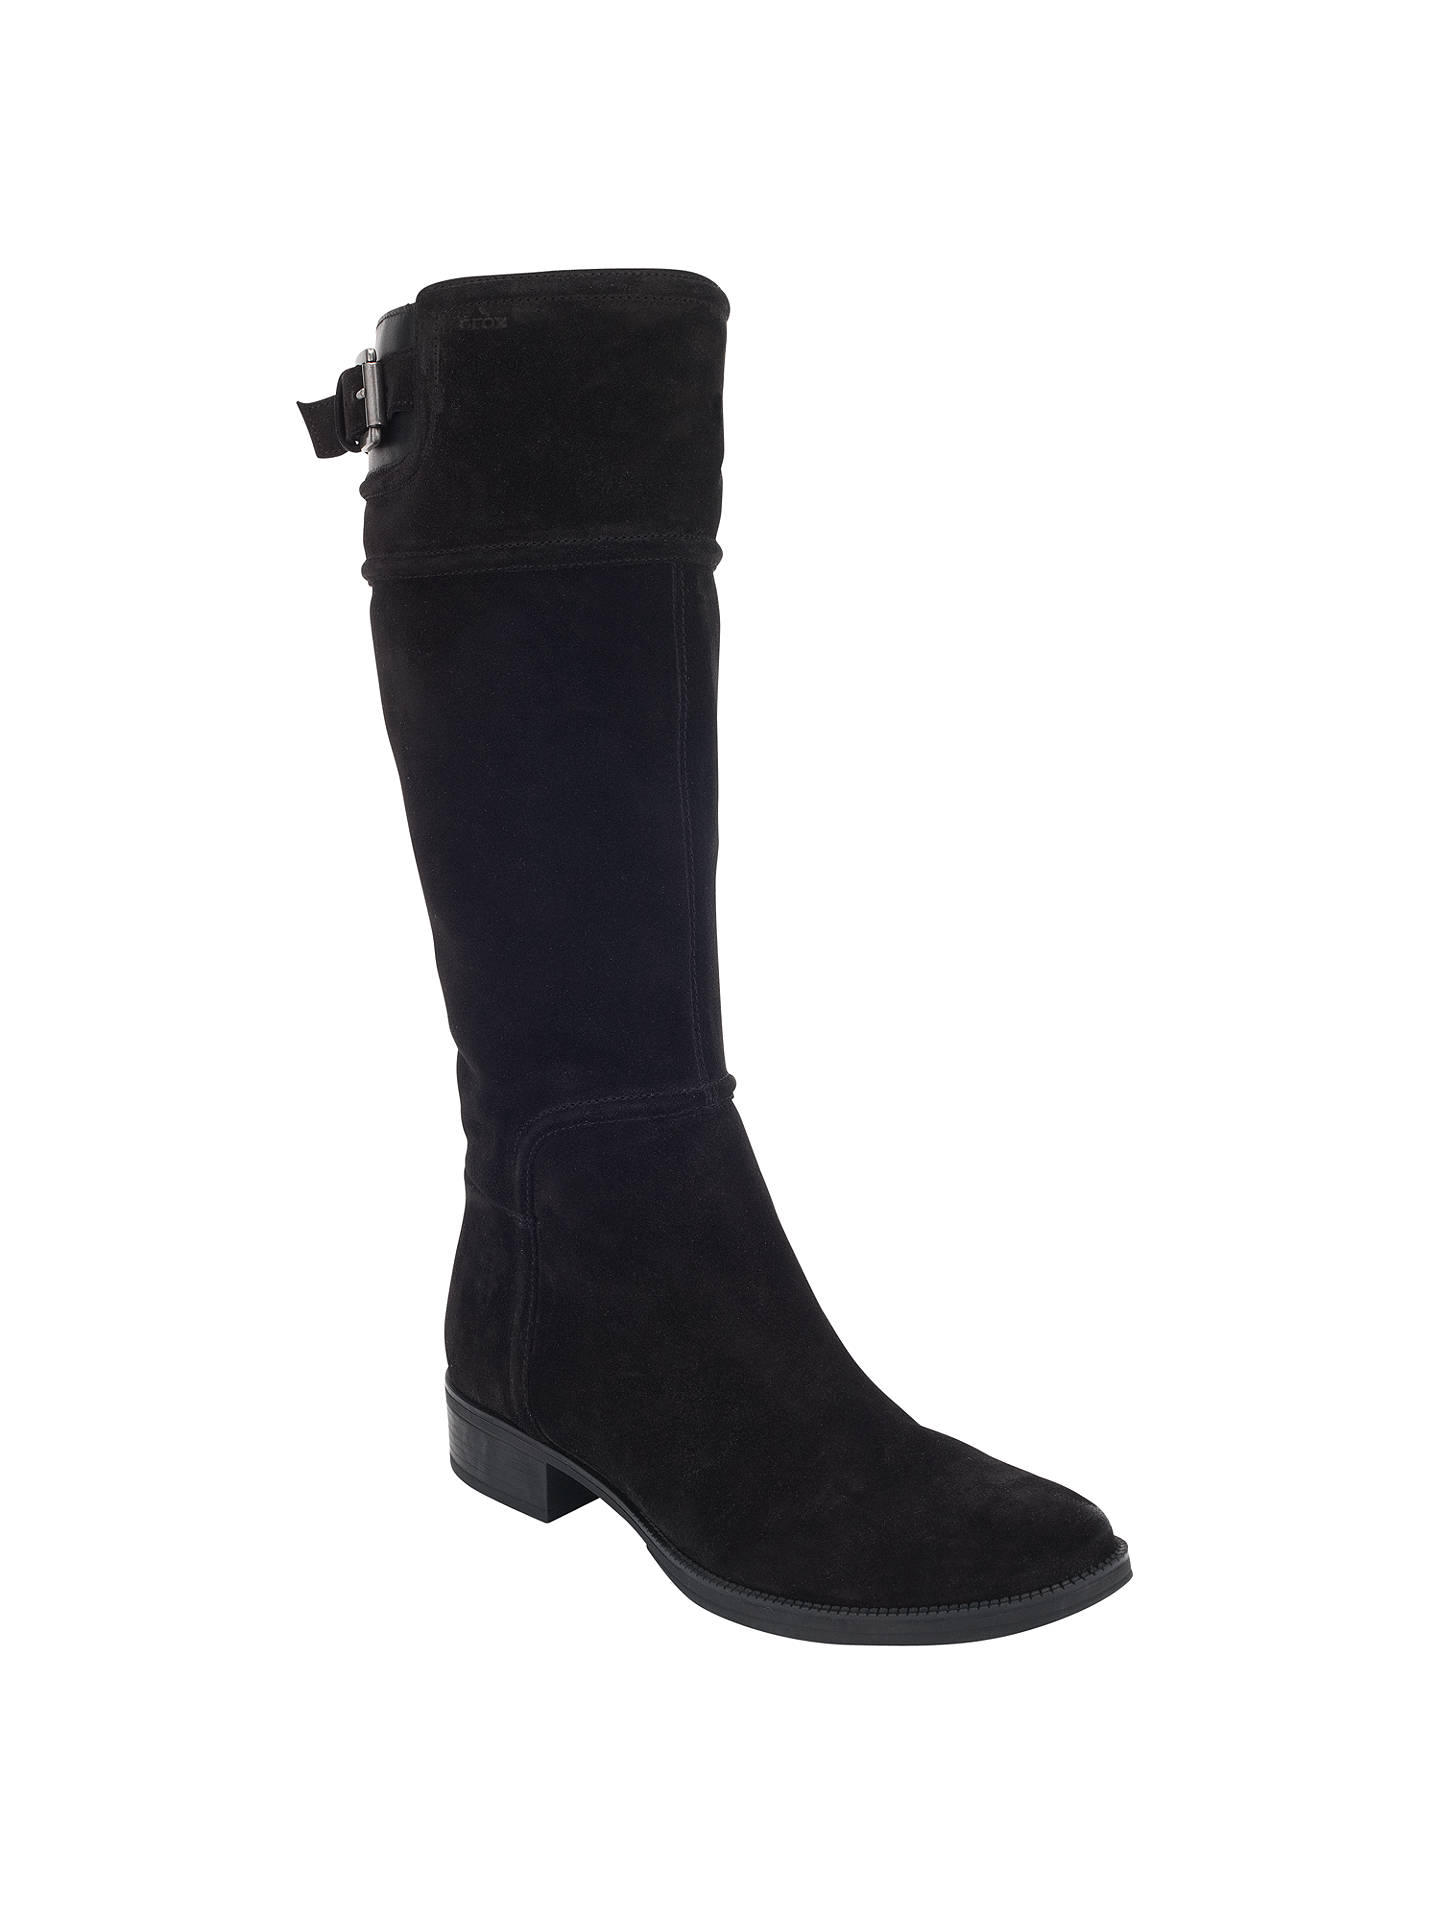 new products f958e 8bc66 Geox Donna Mendi Stivali Knee Boots at John Lewis & Partners